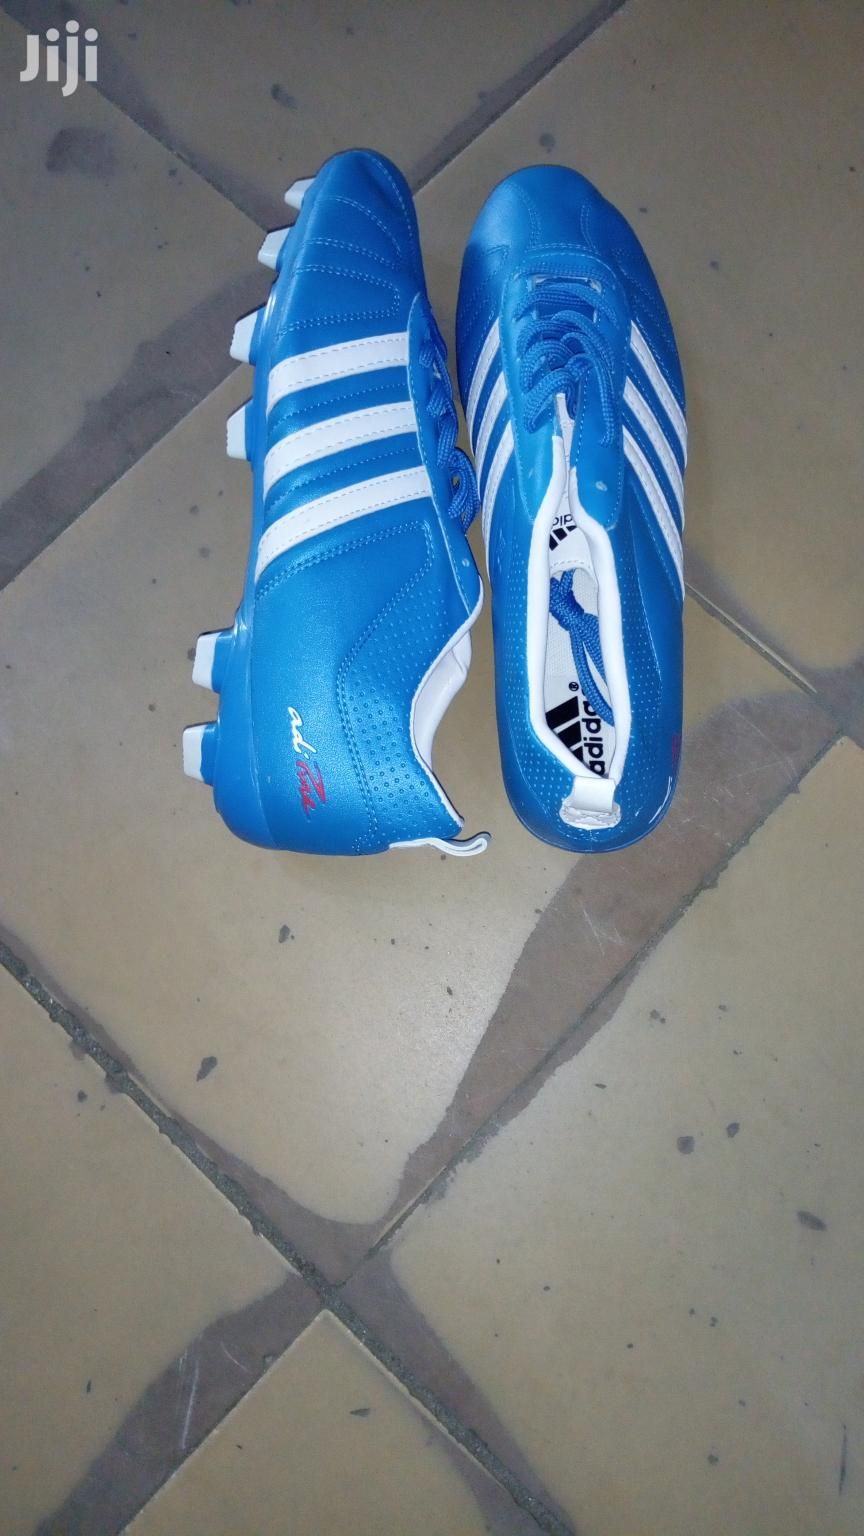 Original Adidas Football Boot | Shoes for sale in Port-Harcourt, Rivers State, Nigeria